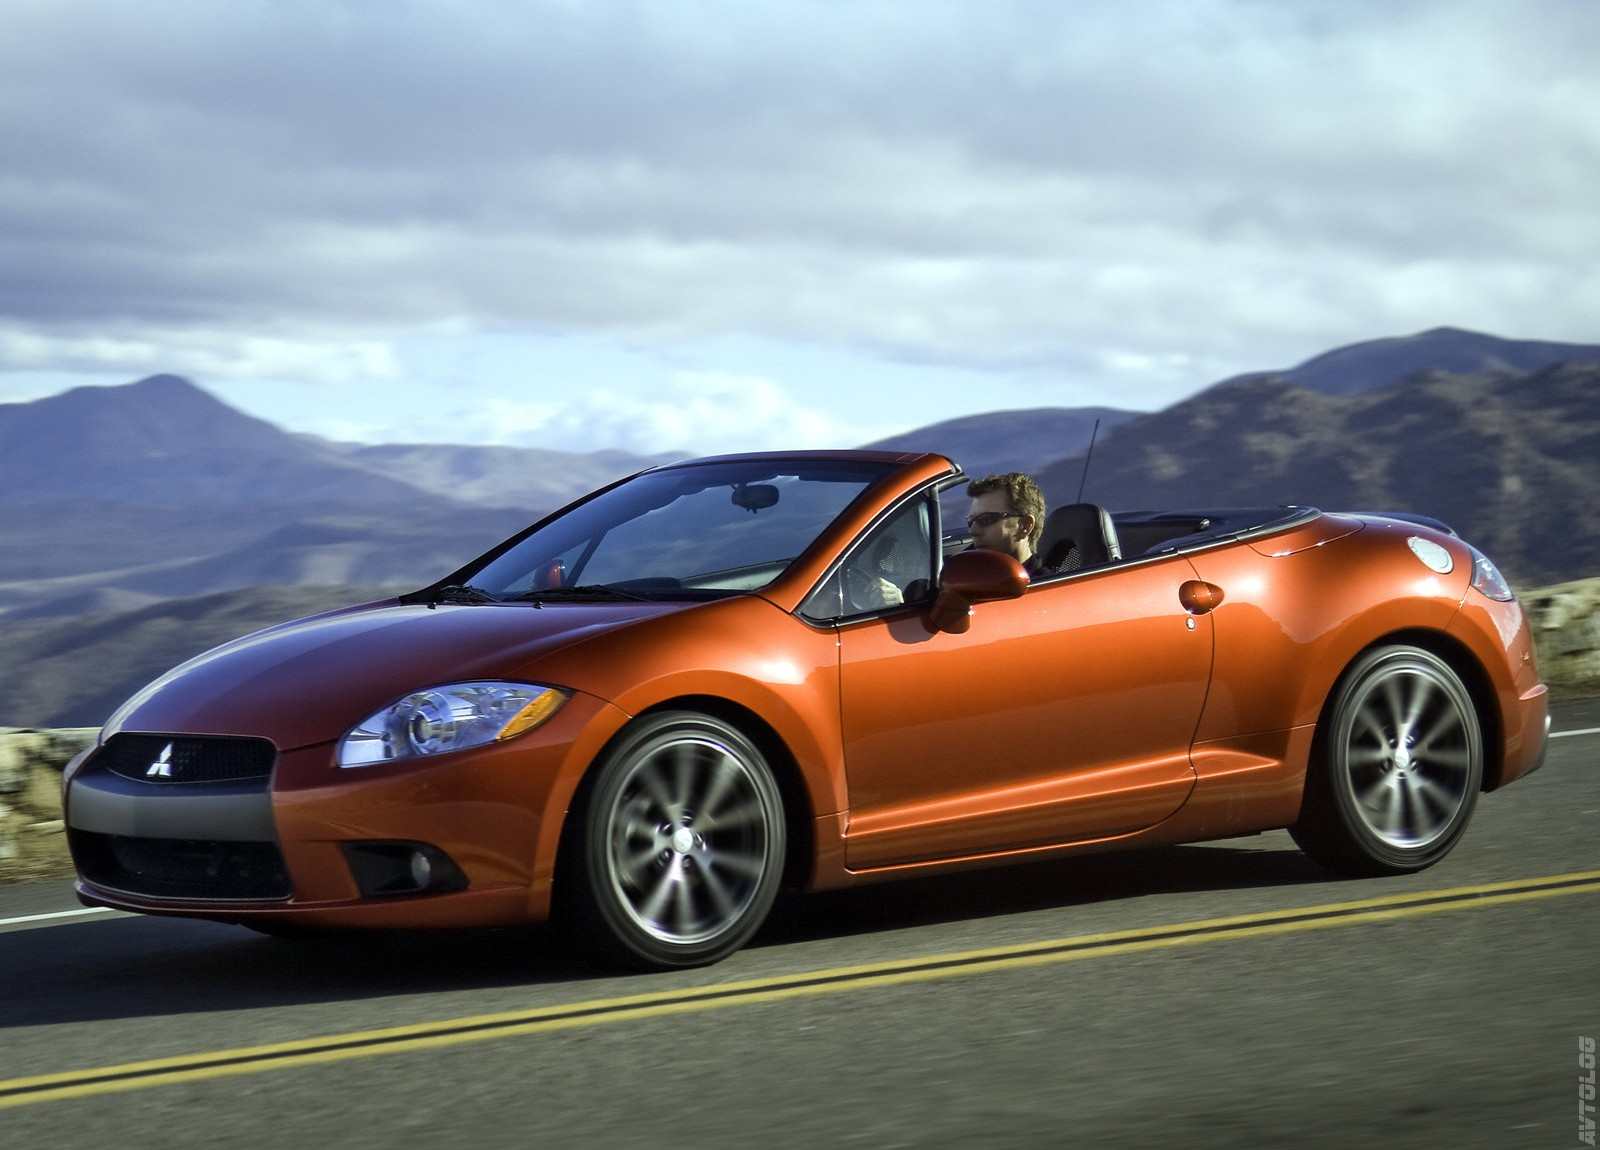 2018 Mitsubishi Eclipse Spyder Gt Car Photos Catalog 2018